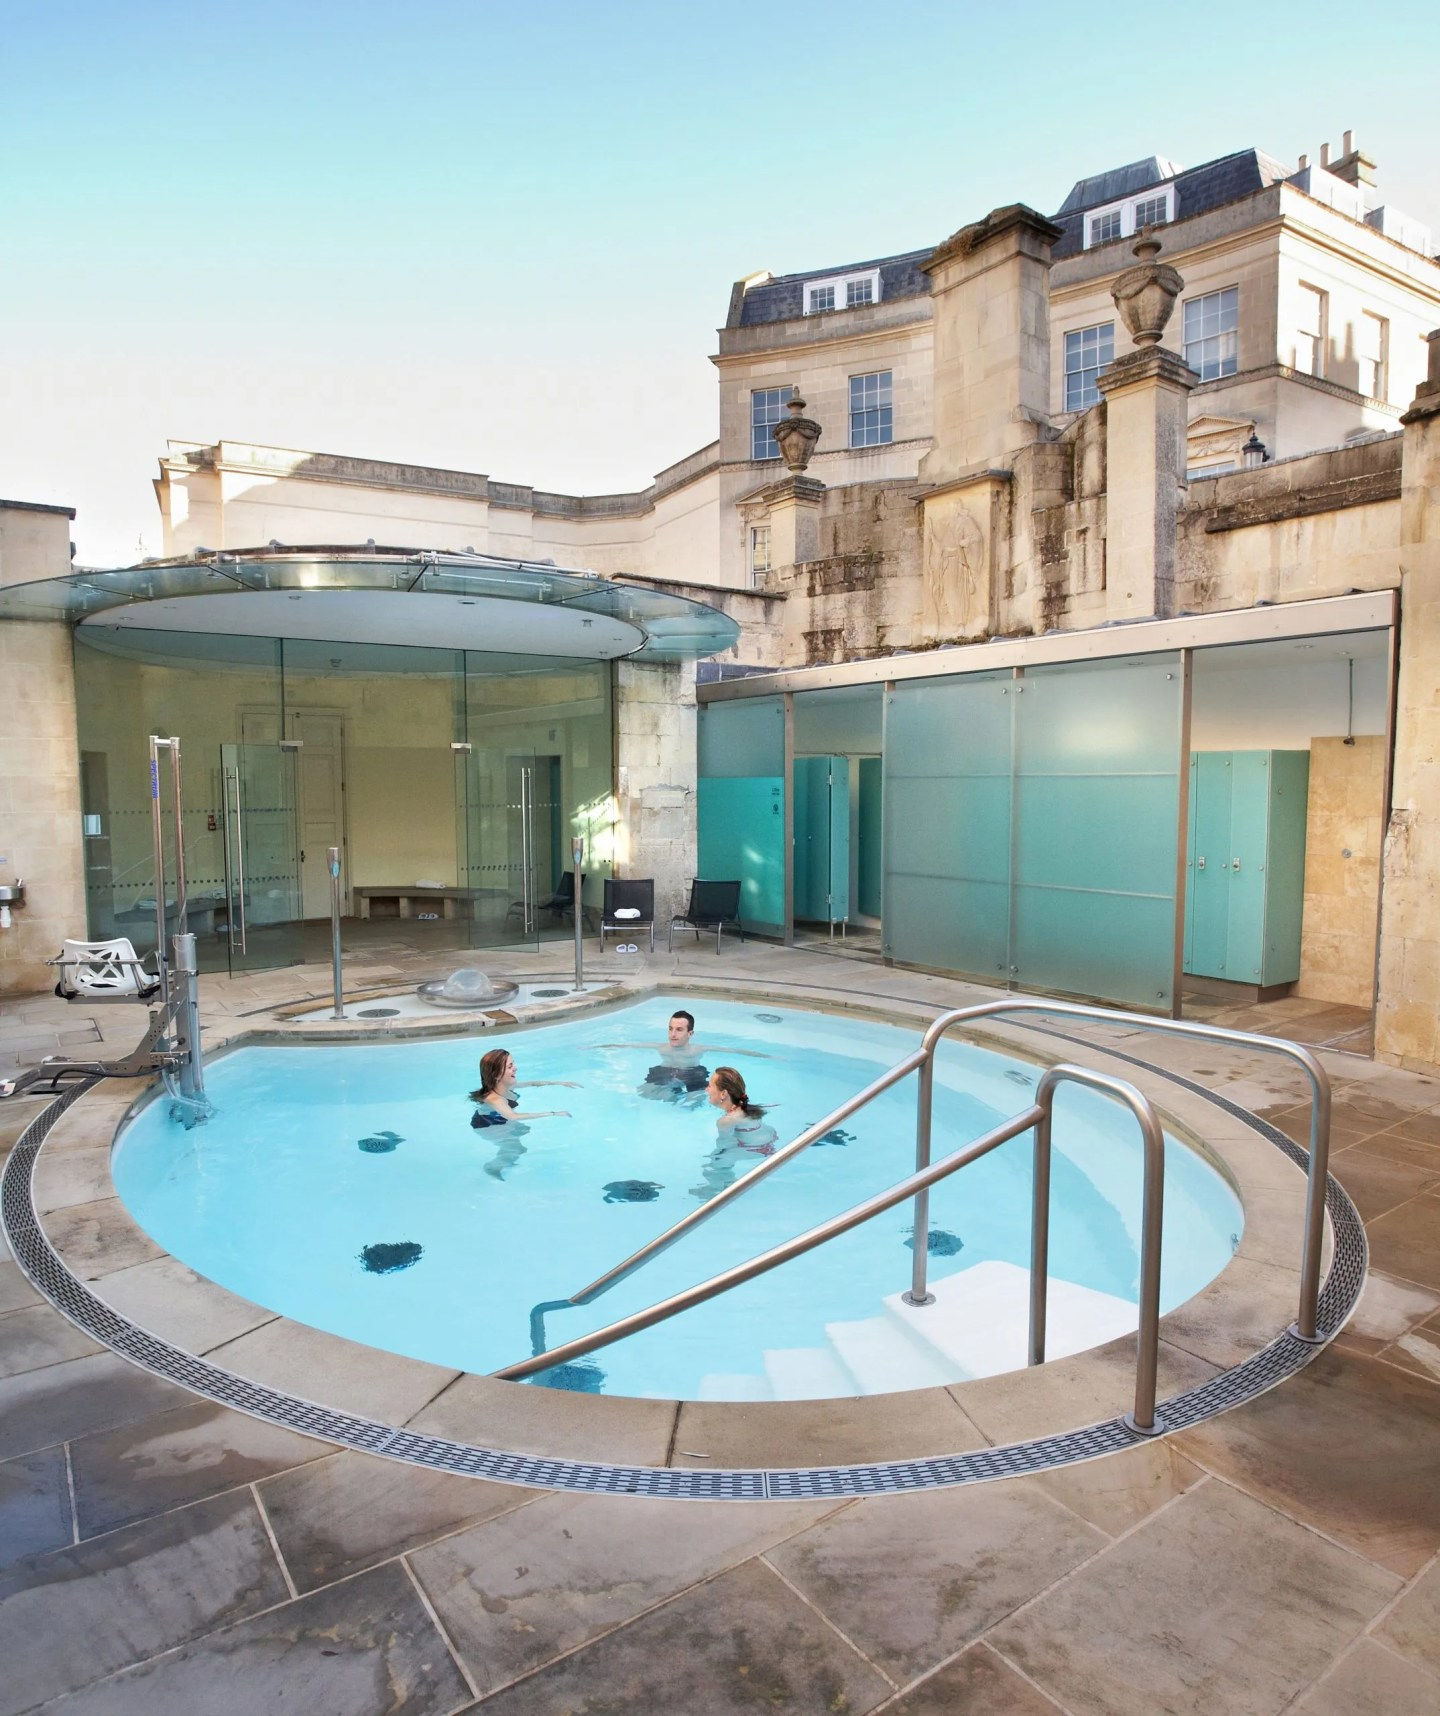 Cross Bath Bath Thermae Spa